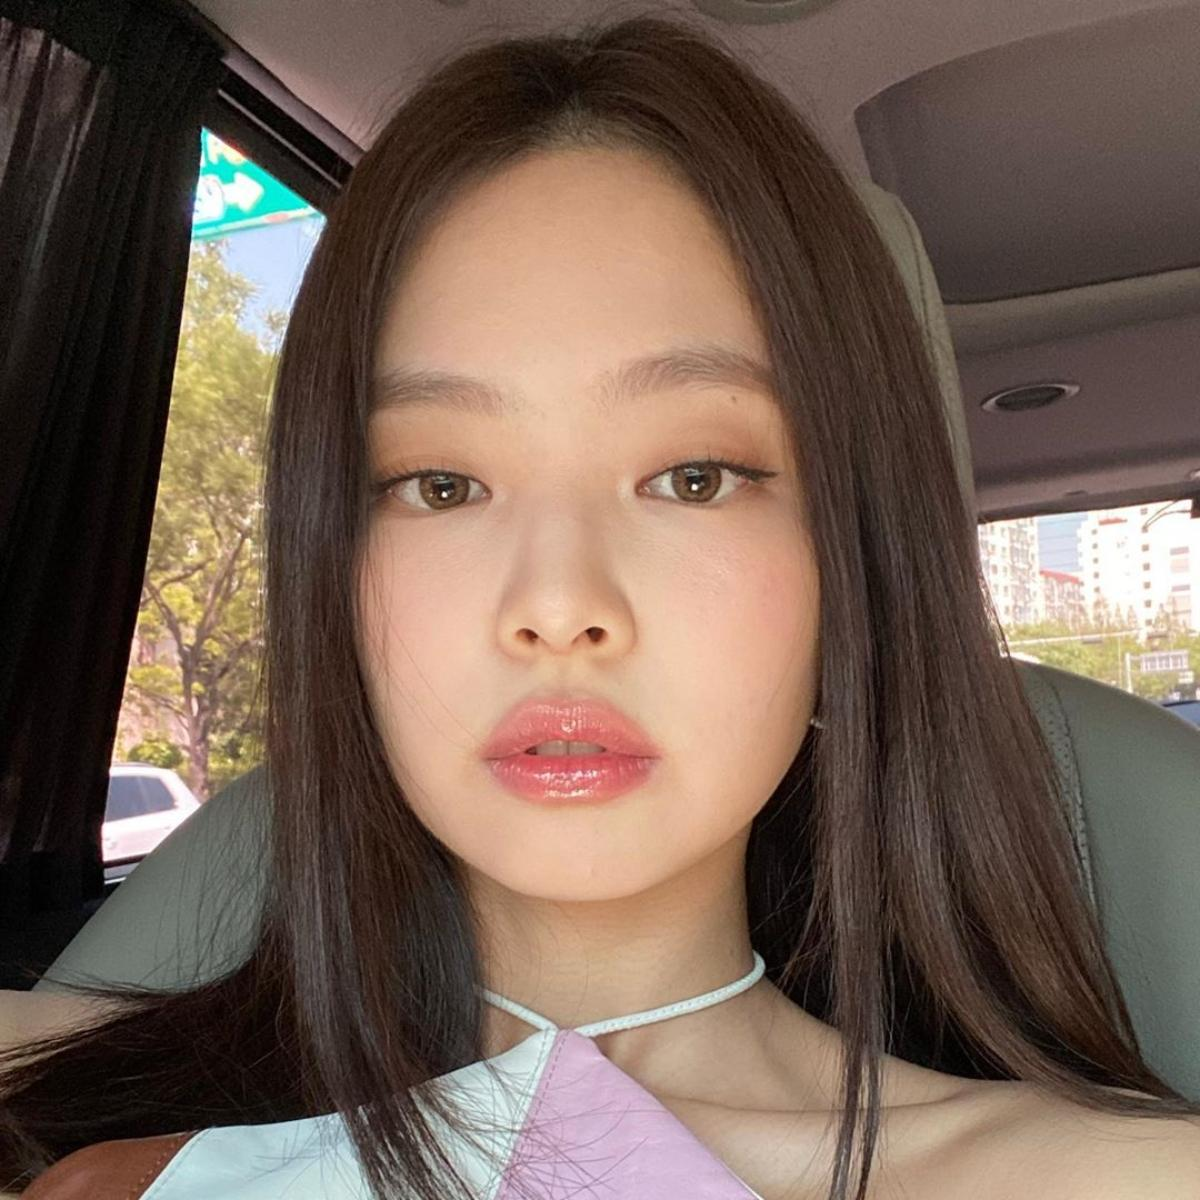 blackpinks_jennies_gorgeous_looks_will_leave_you_spellbound_check_out_photos_mainimage_0.jpg?itok=hEoK9oiX